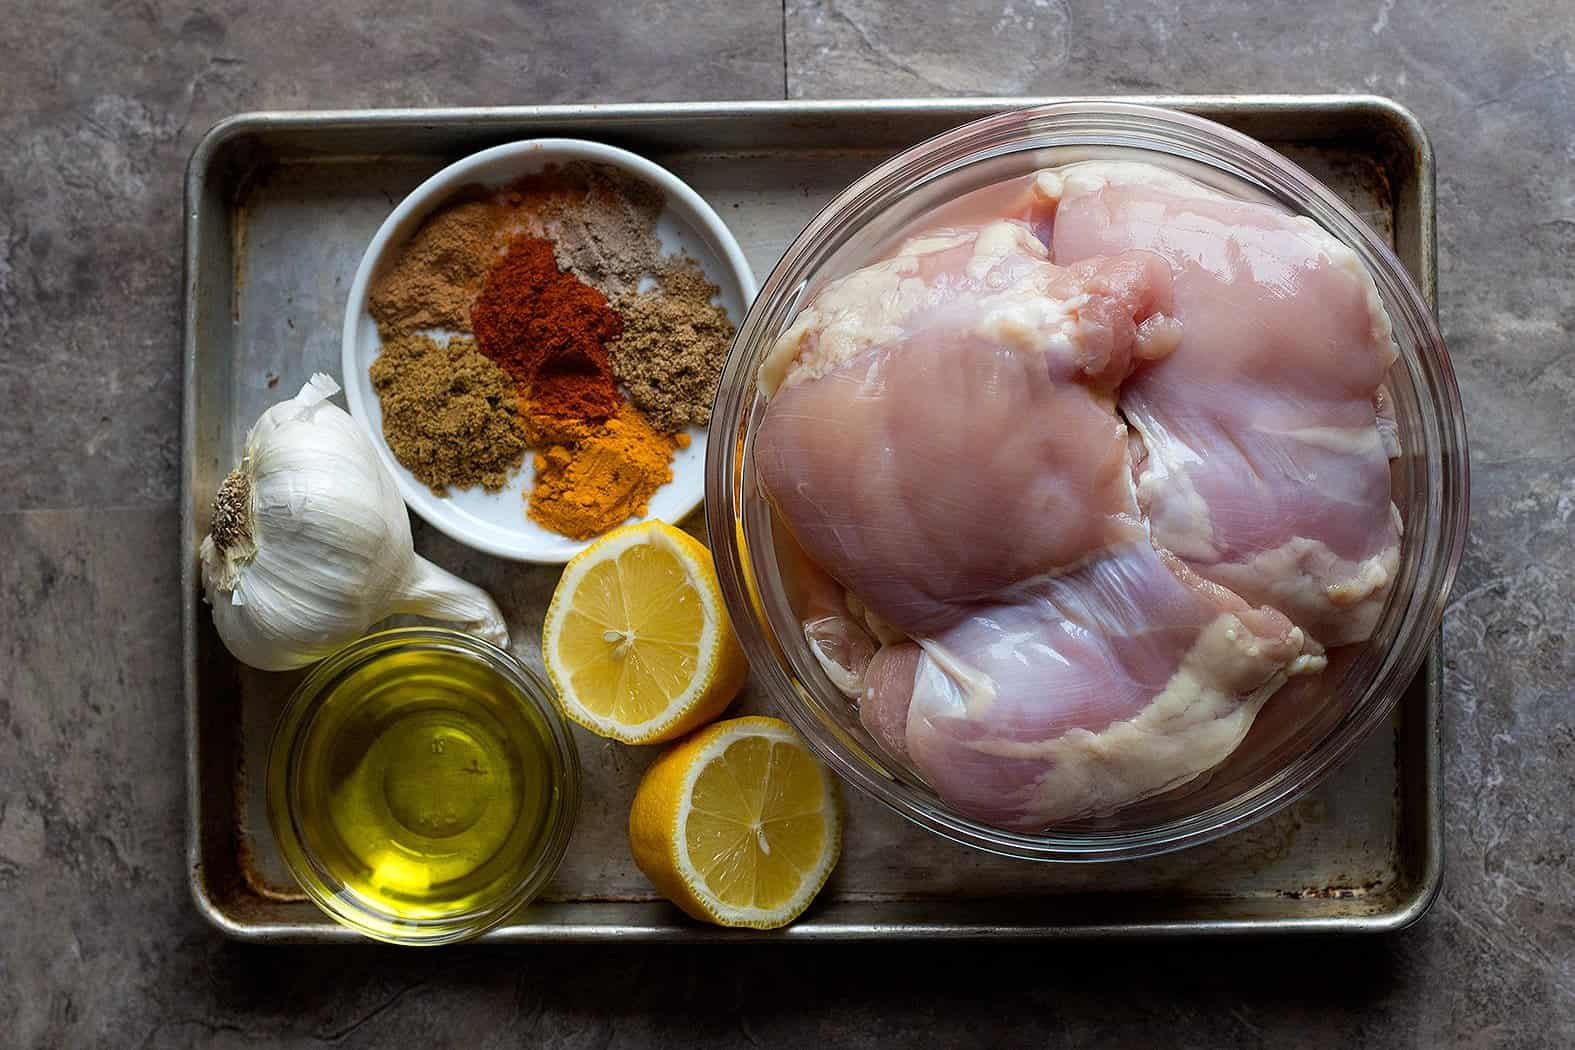 To make this recipe you need chicken thighs, a mix of spices, lemon and garlic.